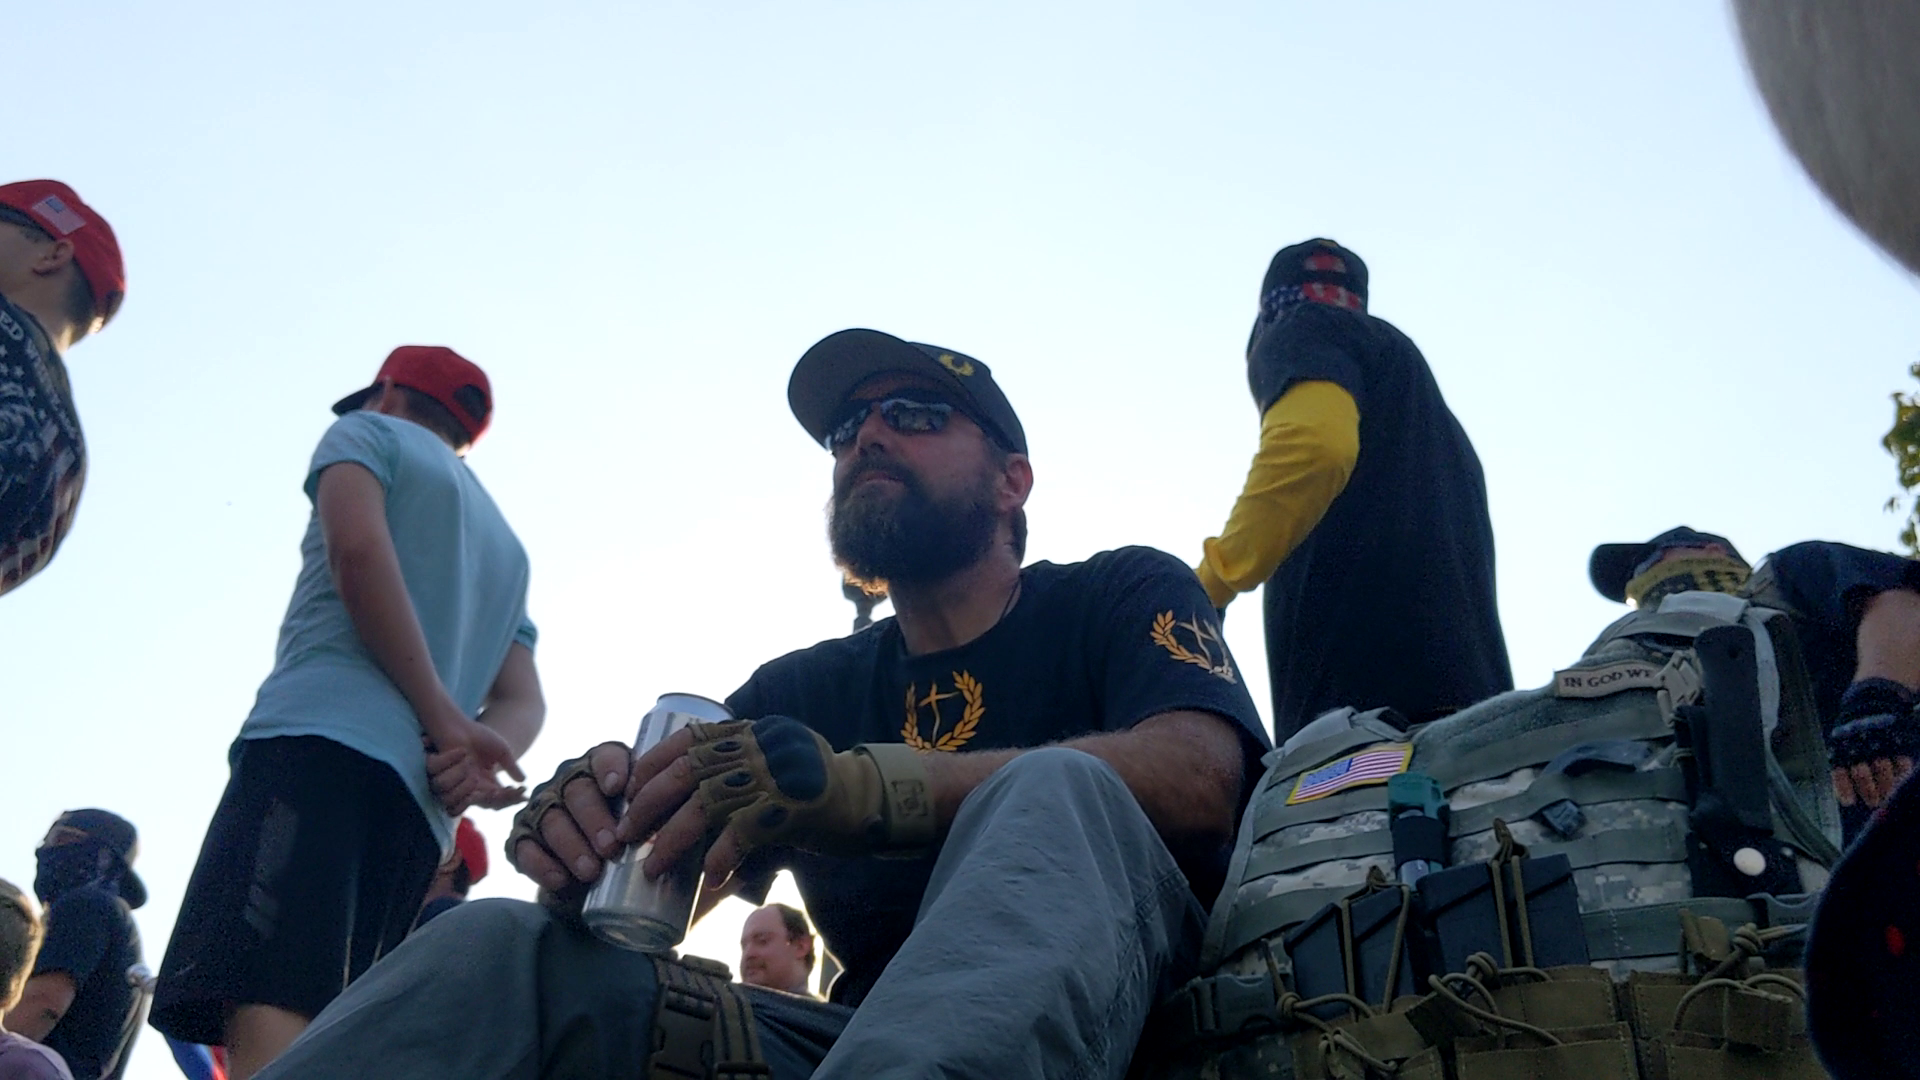 A man in a Proud Boy T-shirt drinks a beer next to body armor with visible AR-15 magazines and an American Flag patch